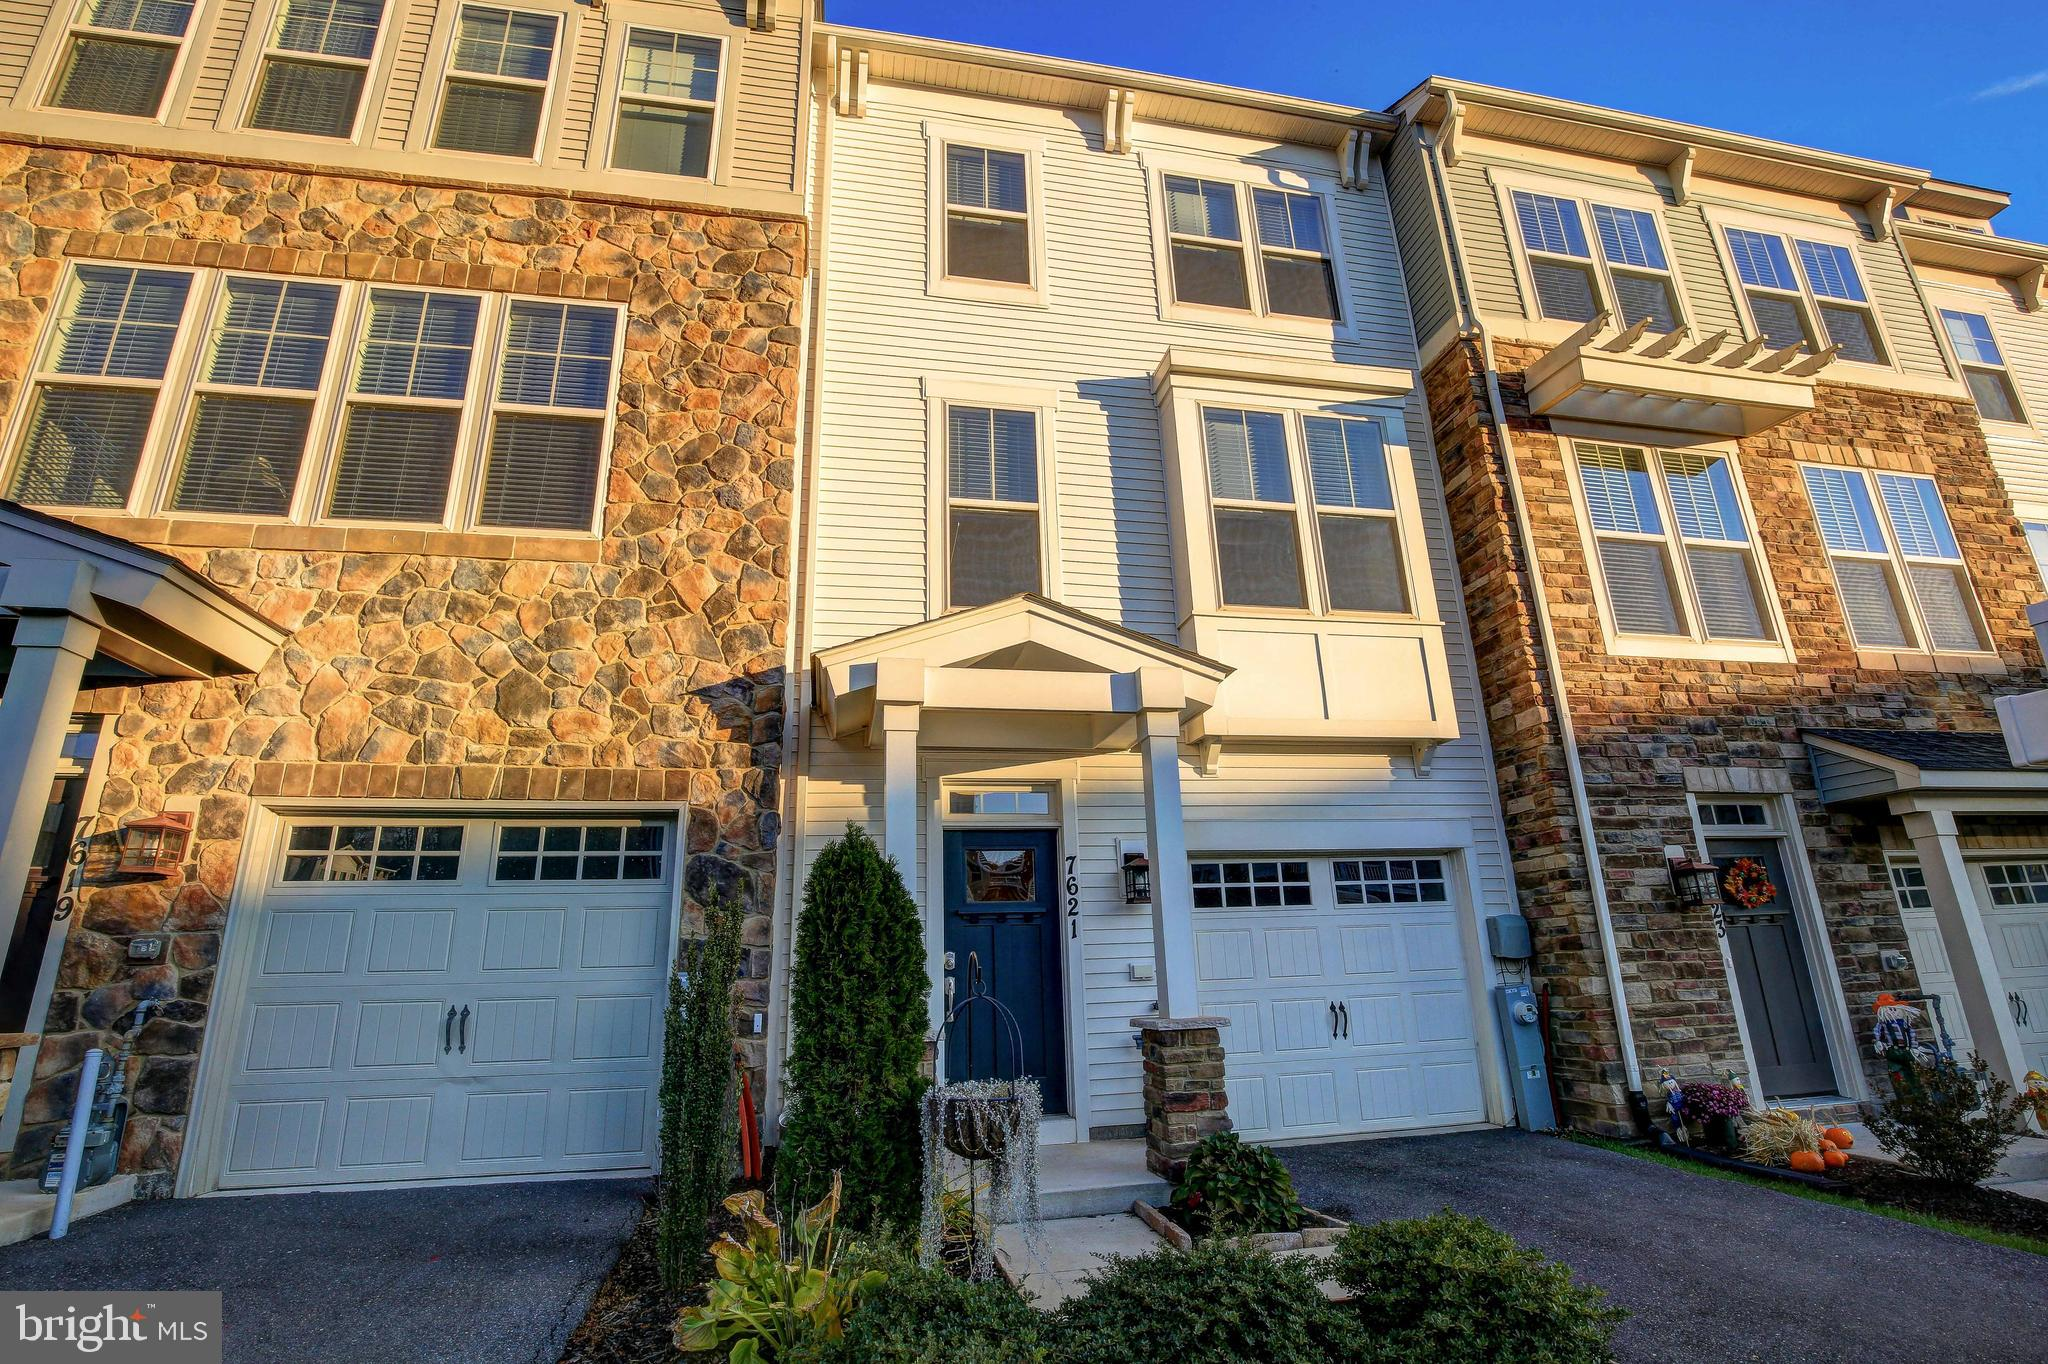 Move in ready- 3 bedroom, 2.5 bath townhome with 9' ceilings! Large kitchen, beautiful island, grani